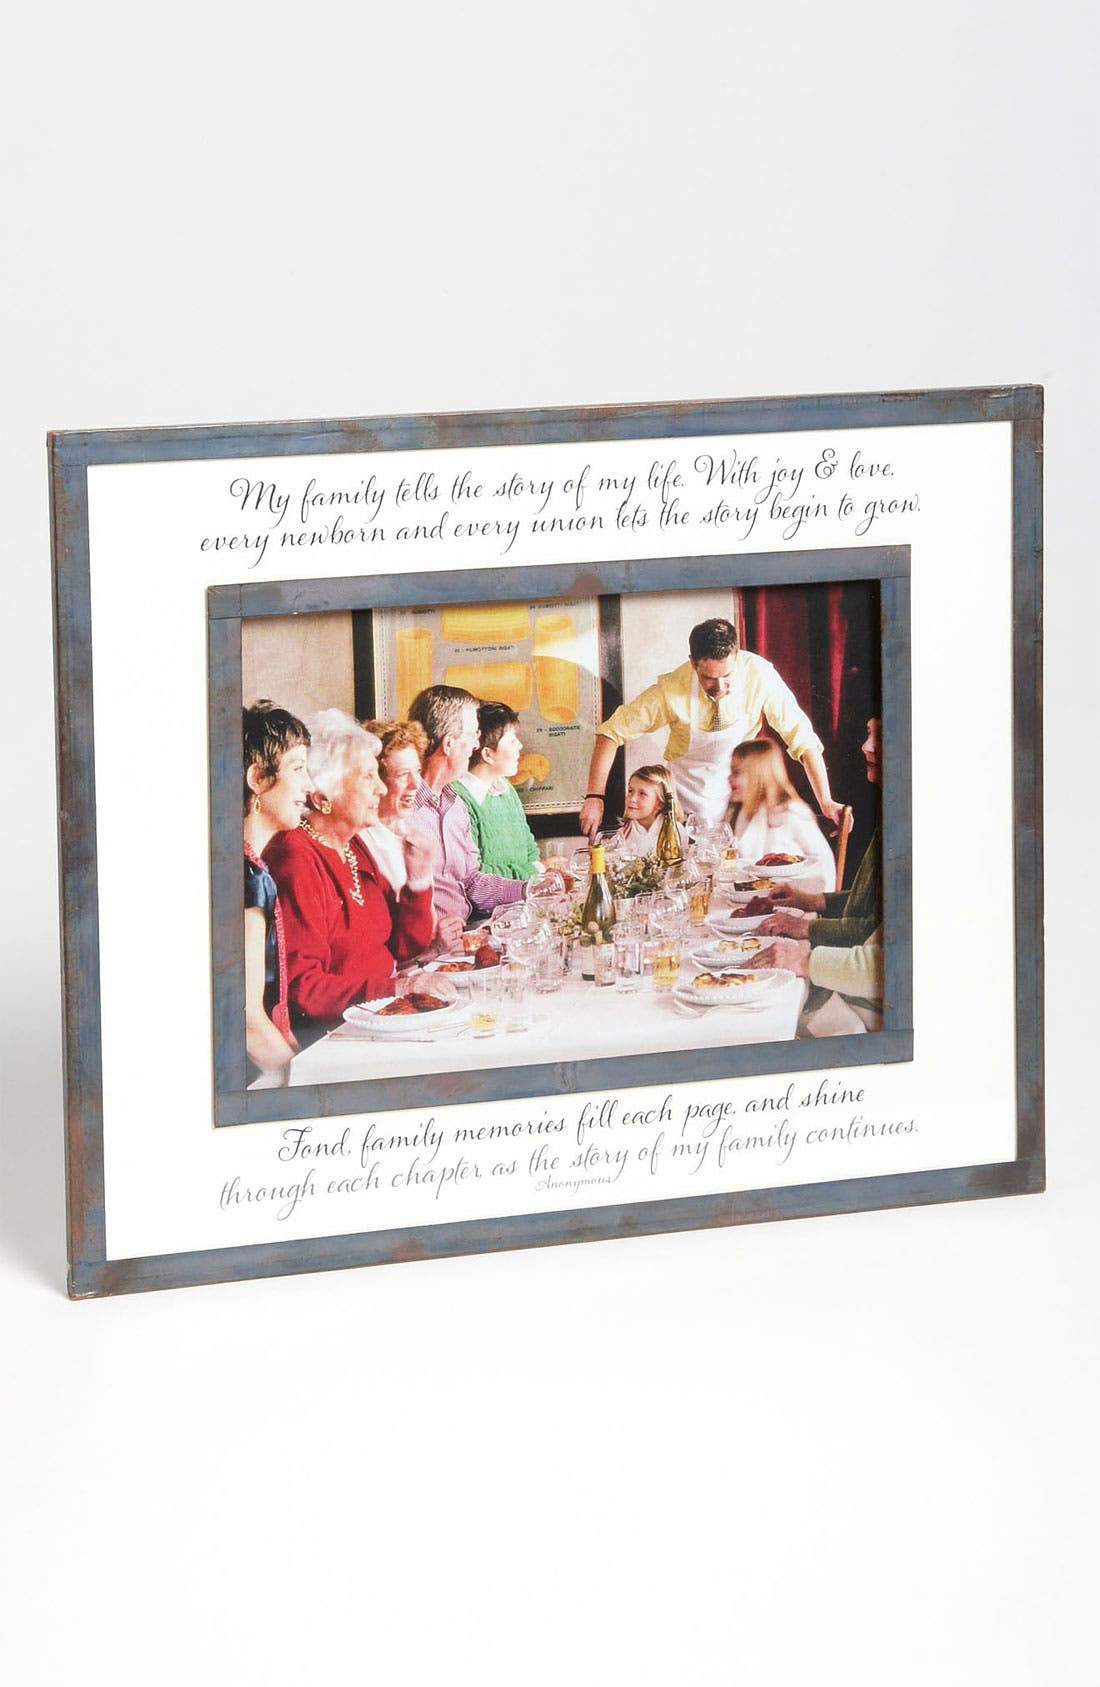 Main Image - Ben's Garden 'Family Tells The Story' Picture Frame